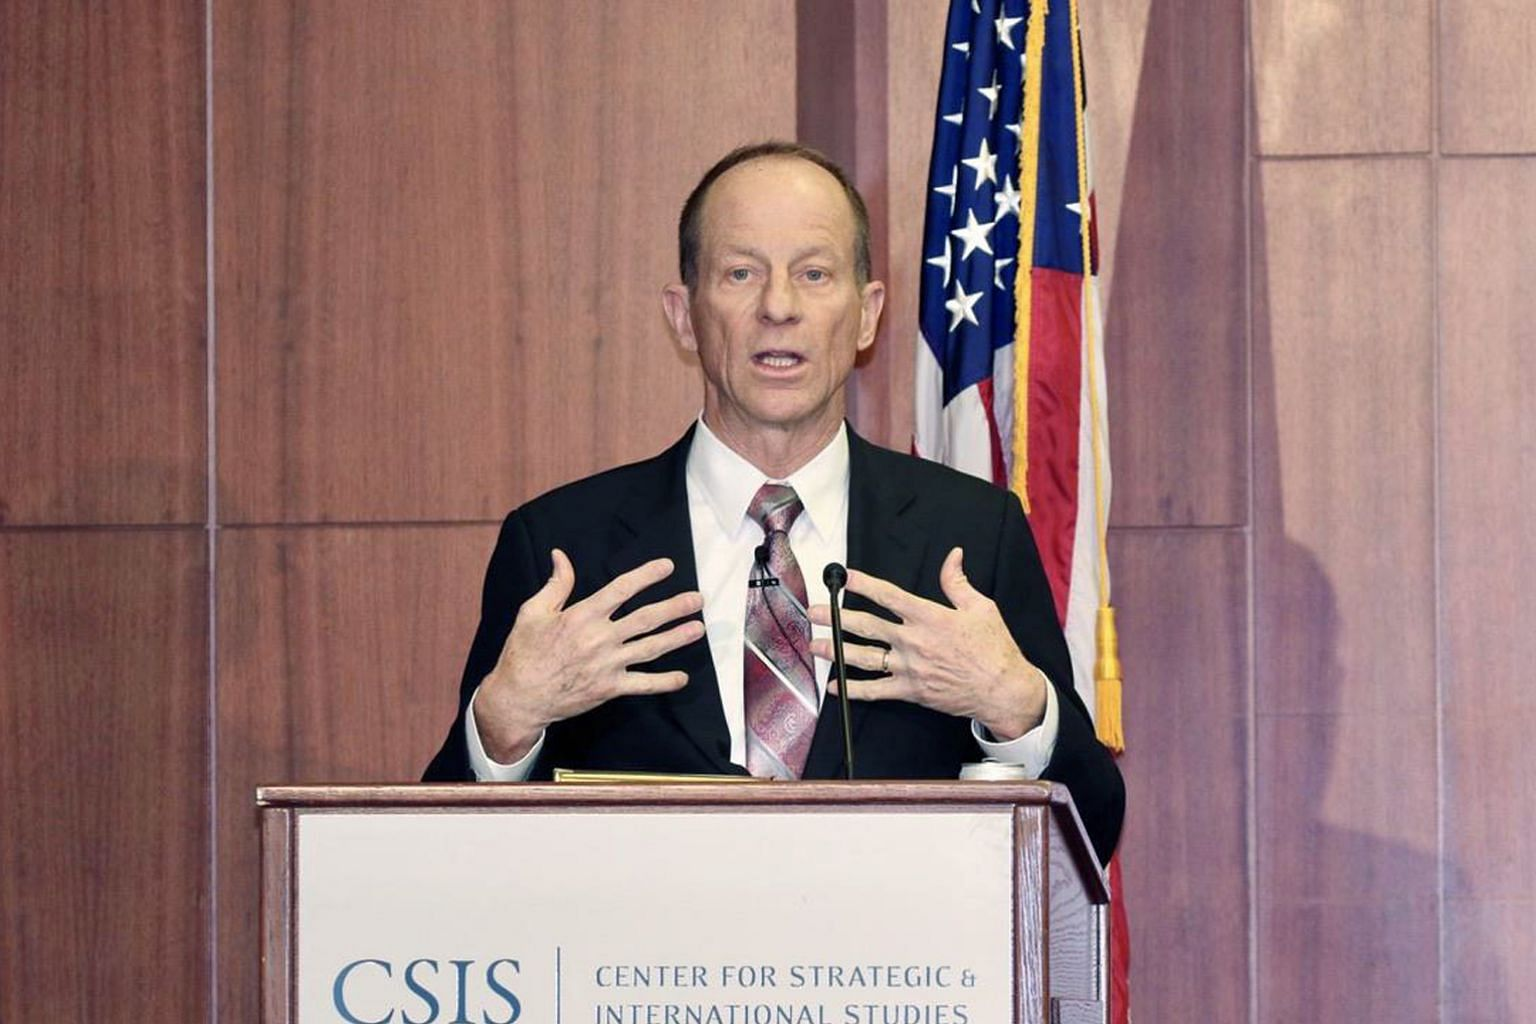 United States Assistant Secretary of State for East Asian and Pacific Affairs David Stilwell speaking at the Centre for Strategic and International Studies in Washington on Thursday. Observers speculated that the speech, as a reminder of how the US has he